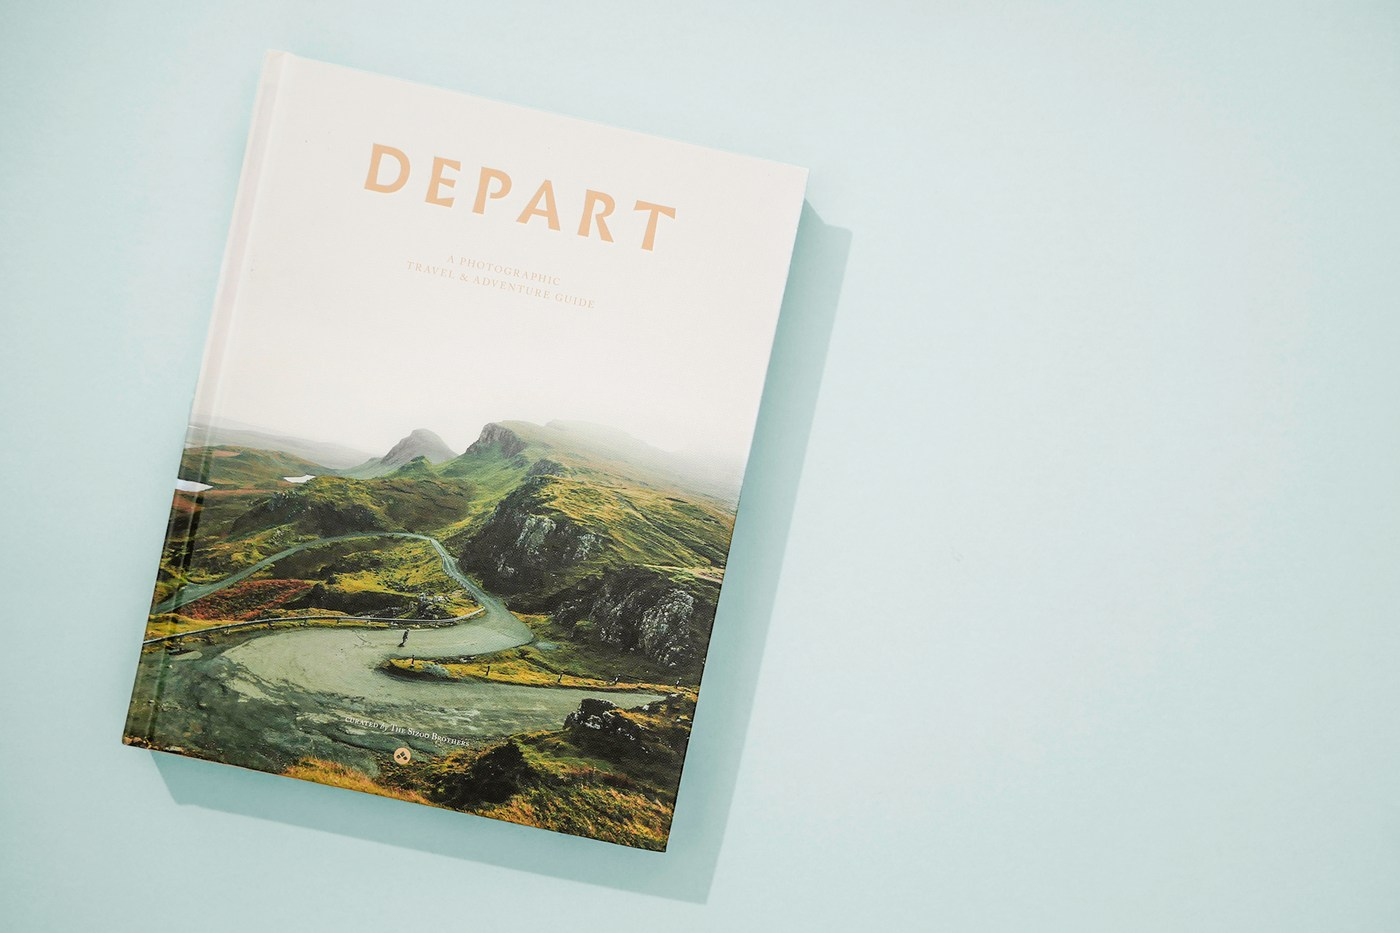 depart-mendo-book-2016-photographers-travel-0